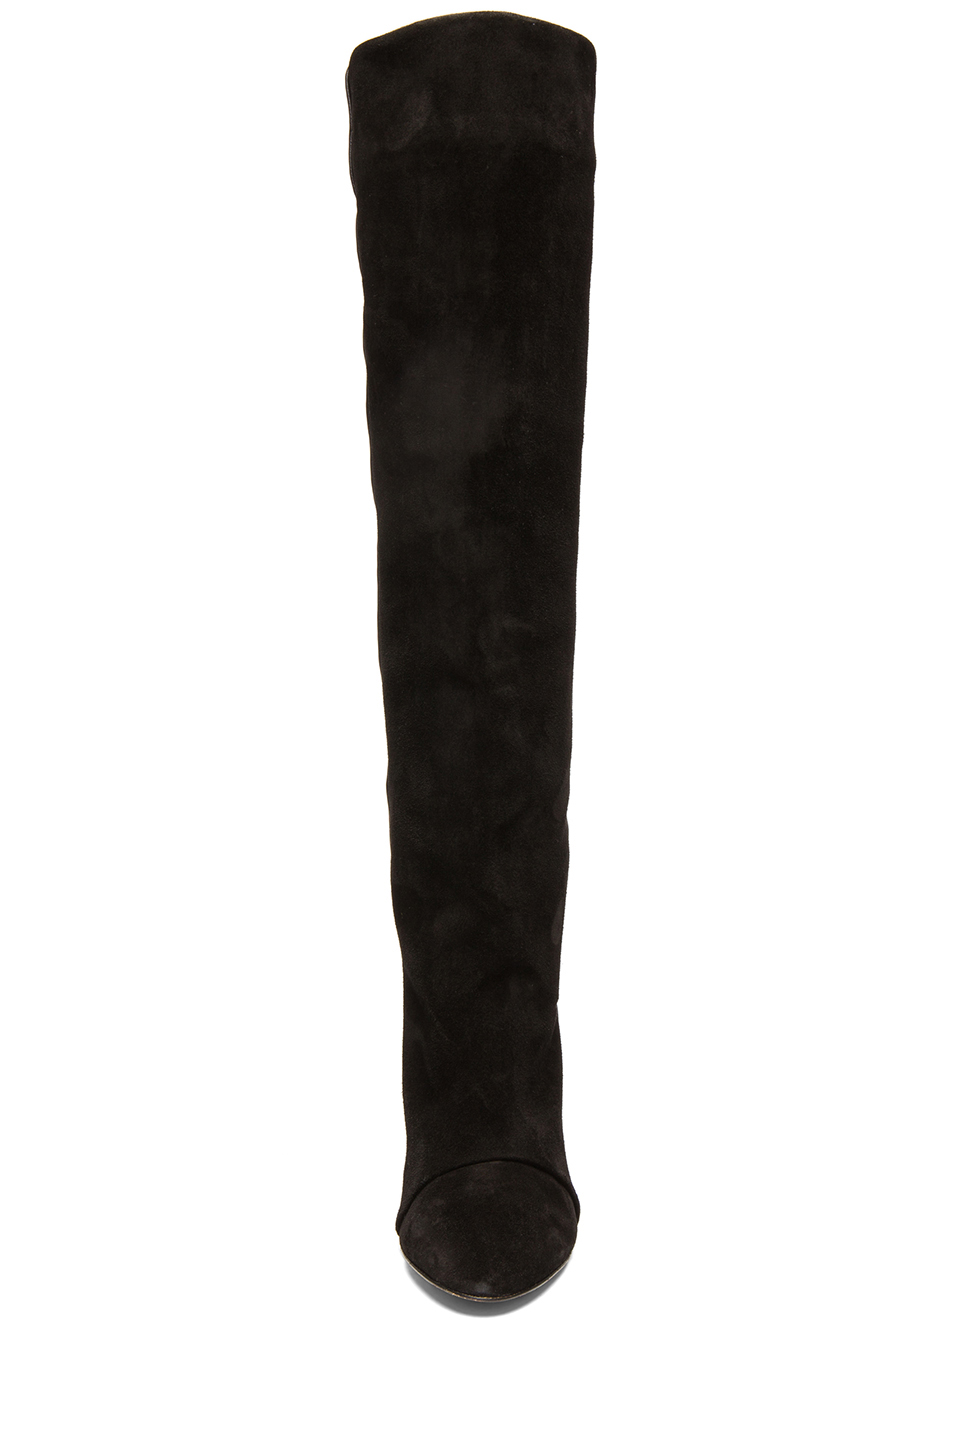 Isabel Marant|Prescott Calfskin Velvet Leather Boots in Black